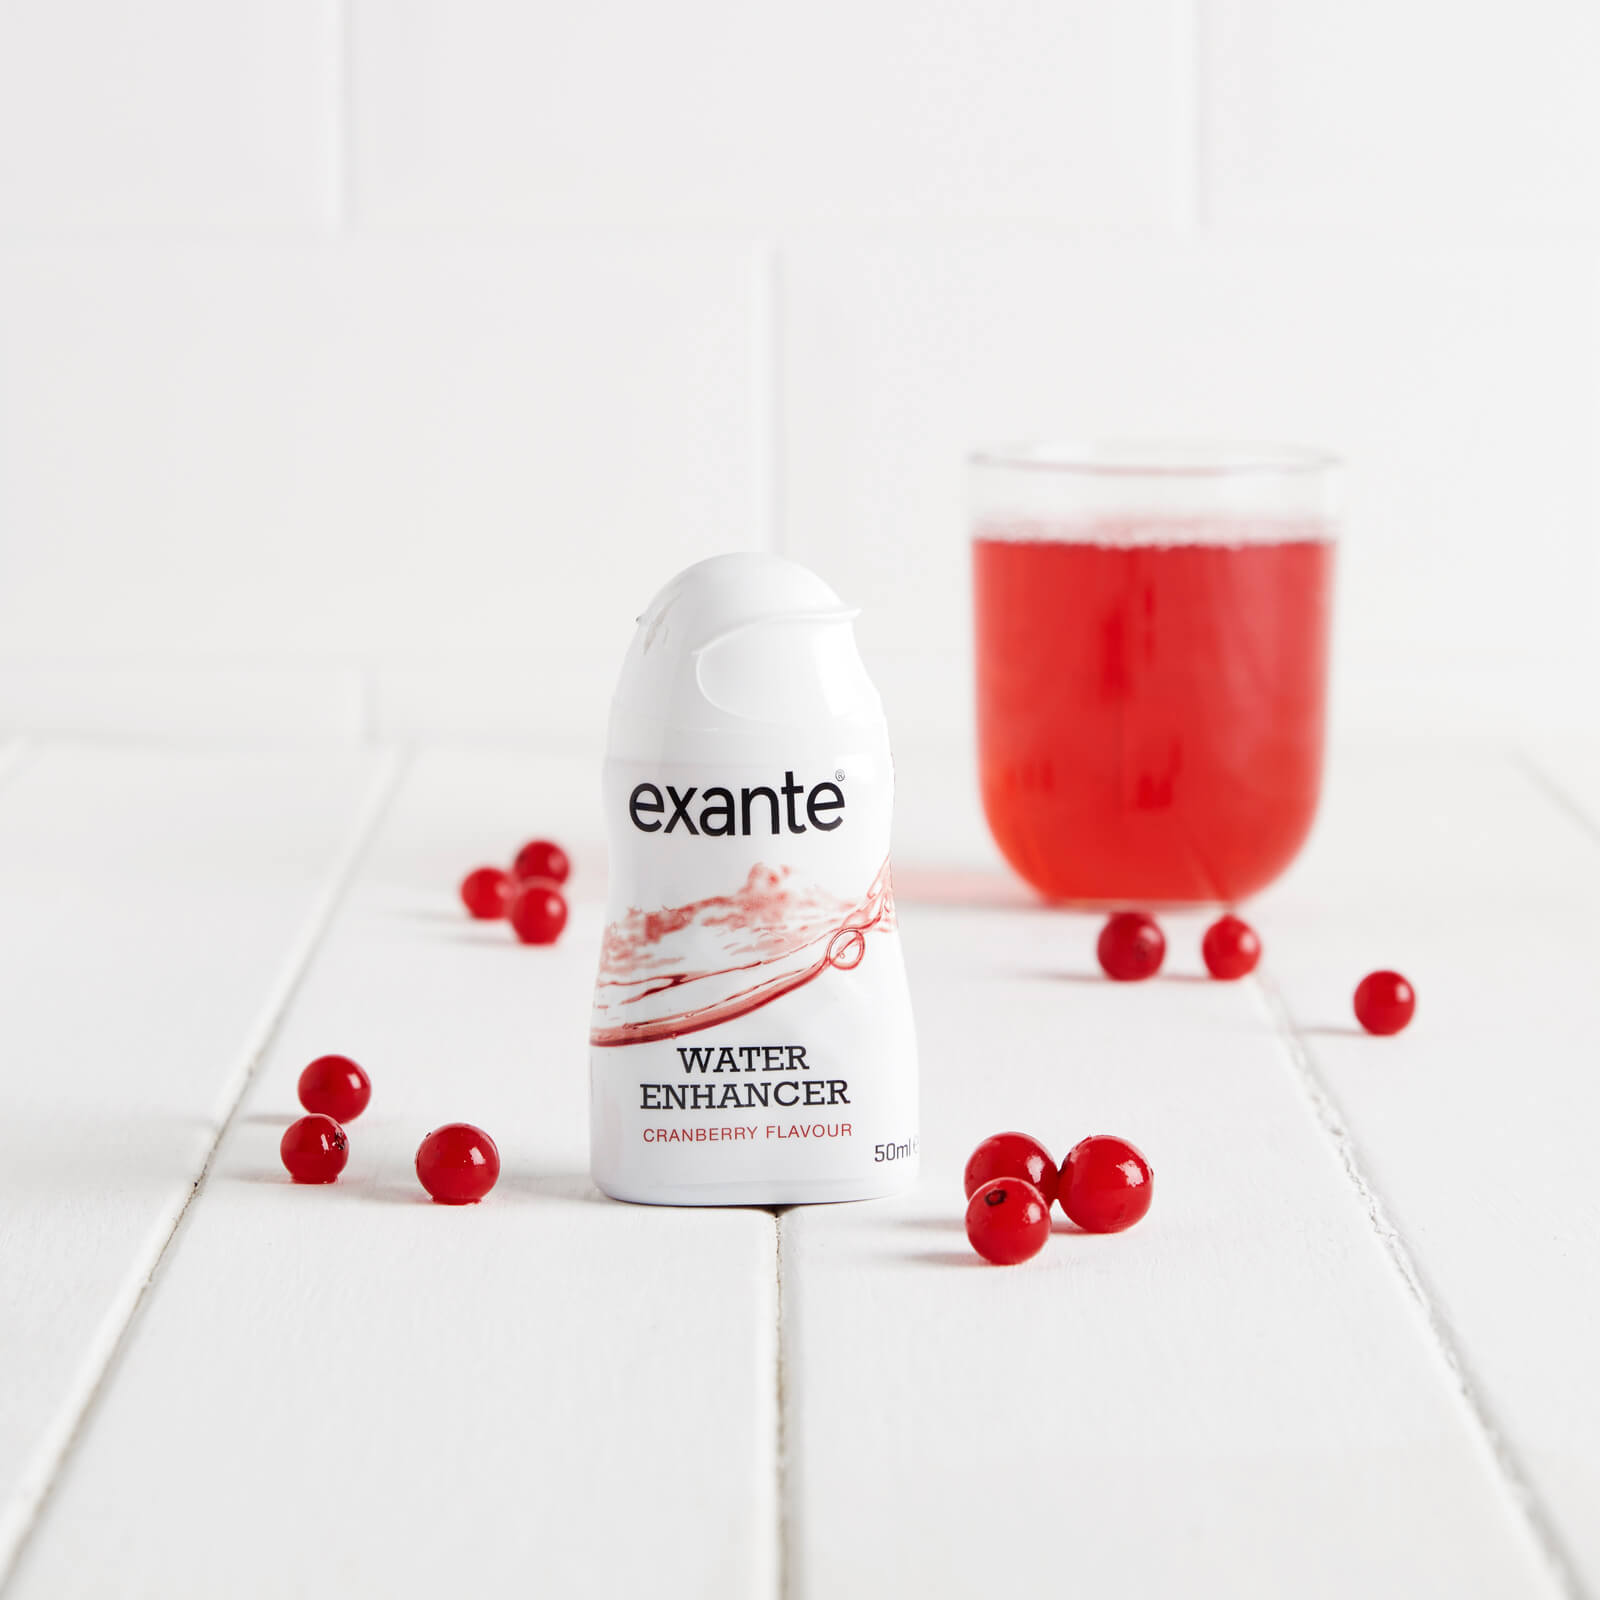 Exante Water Enhancer Cranberry Flavoured